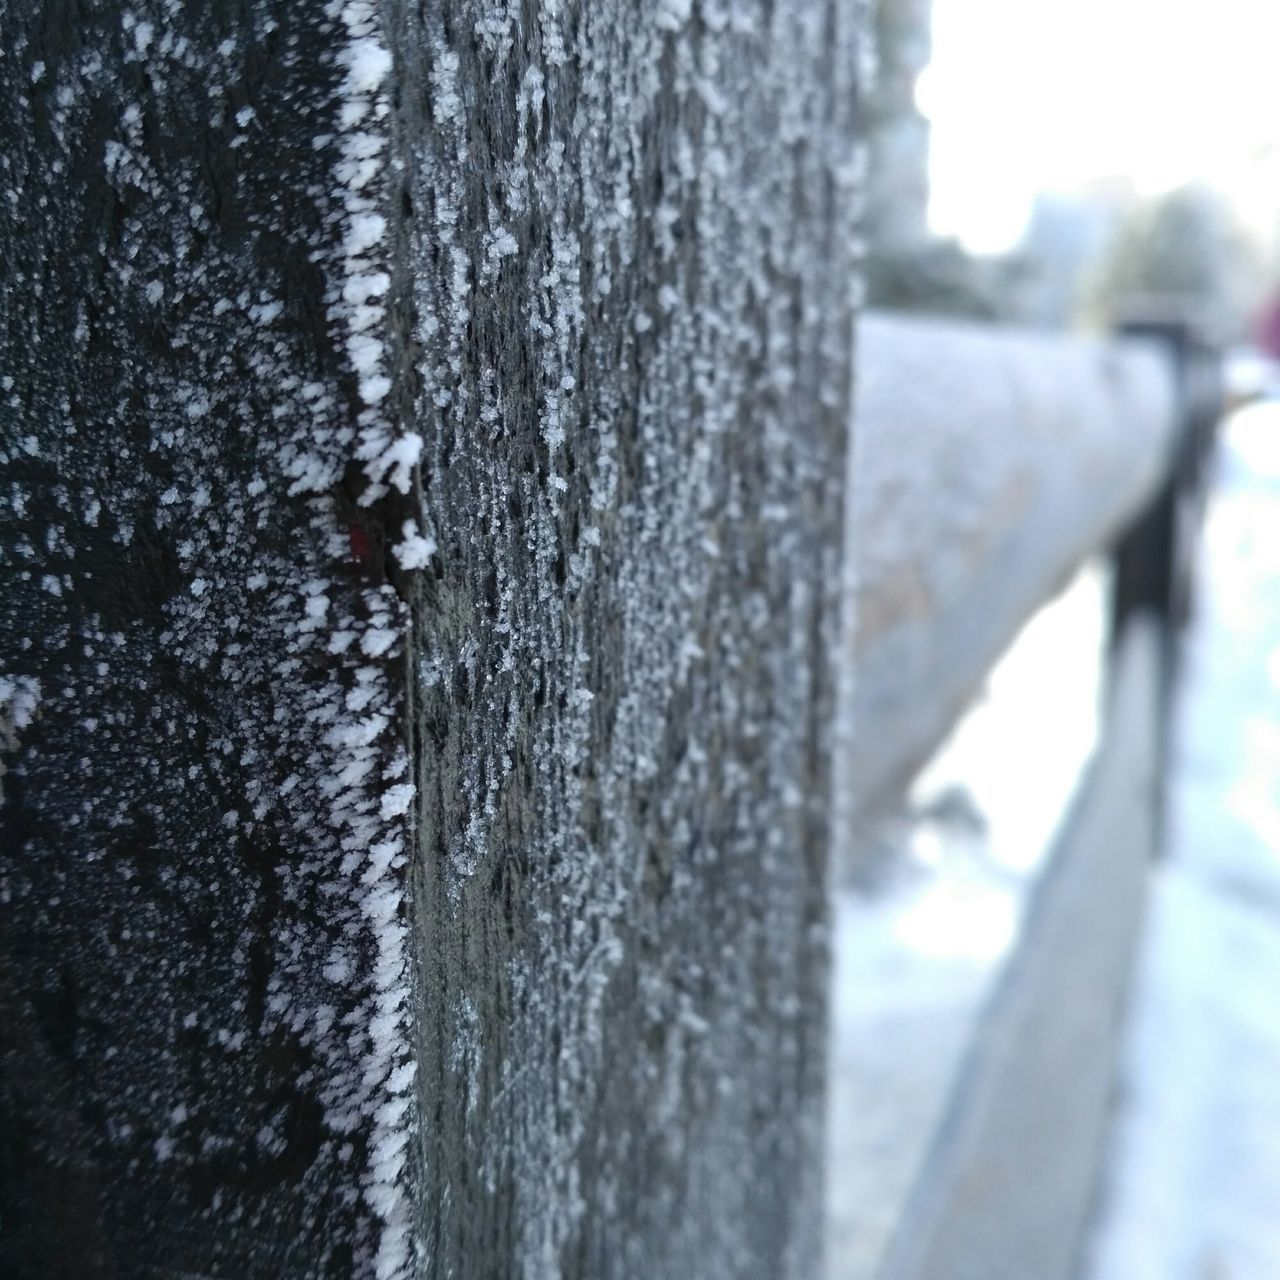 textured, day, close-up, no people, snow, nature, outdoors, winter, tree, cold temperature, beauty in nature, animal themes